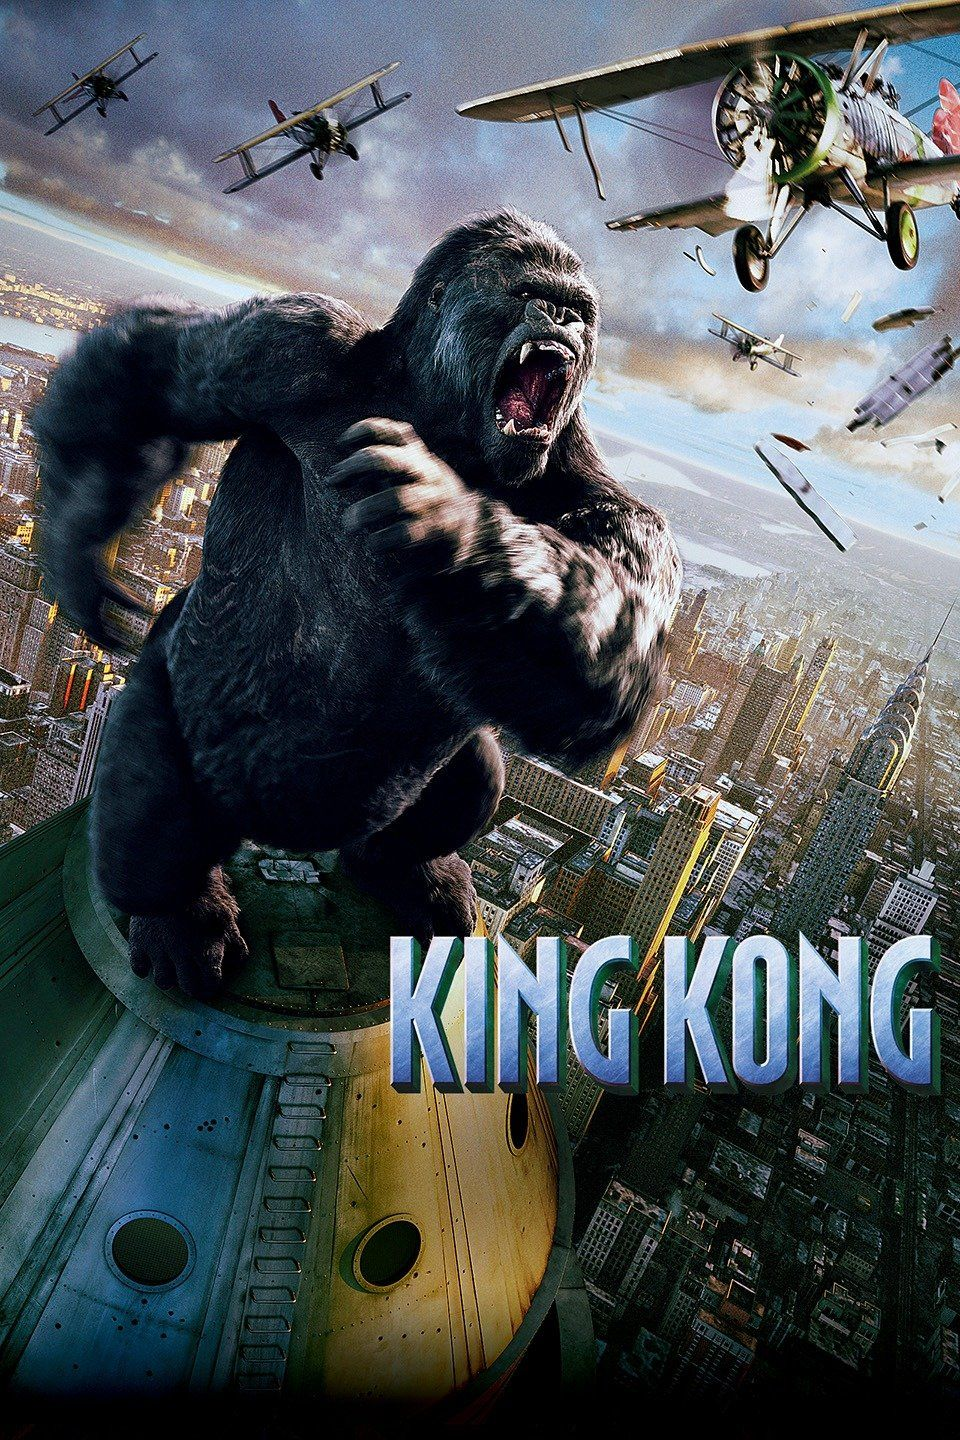 Pin by 琳月 尹 on KING KONG AND MIGHTY JOE YOUNG 19332020 in